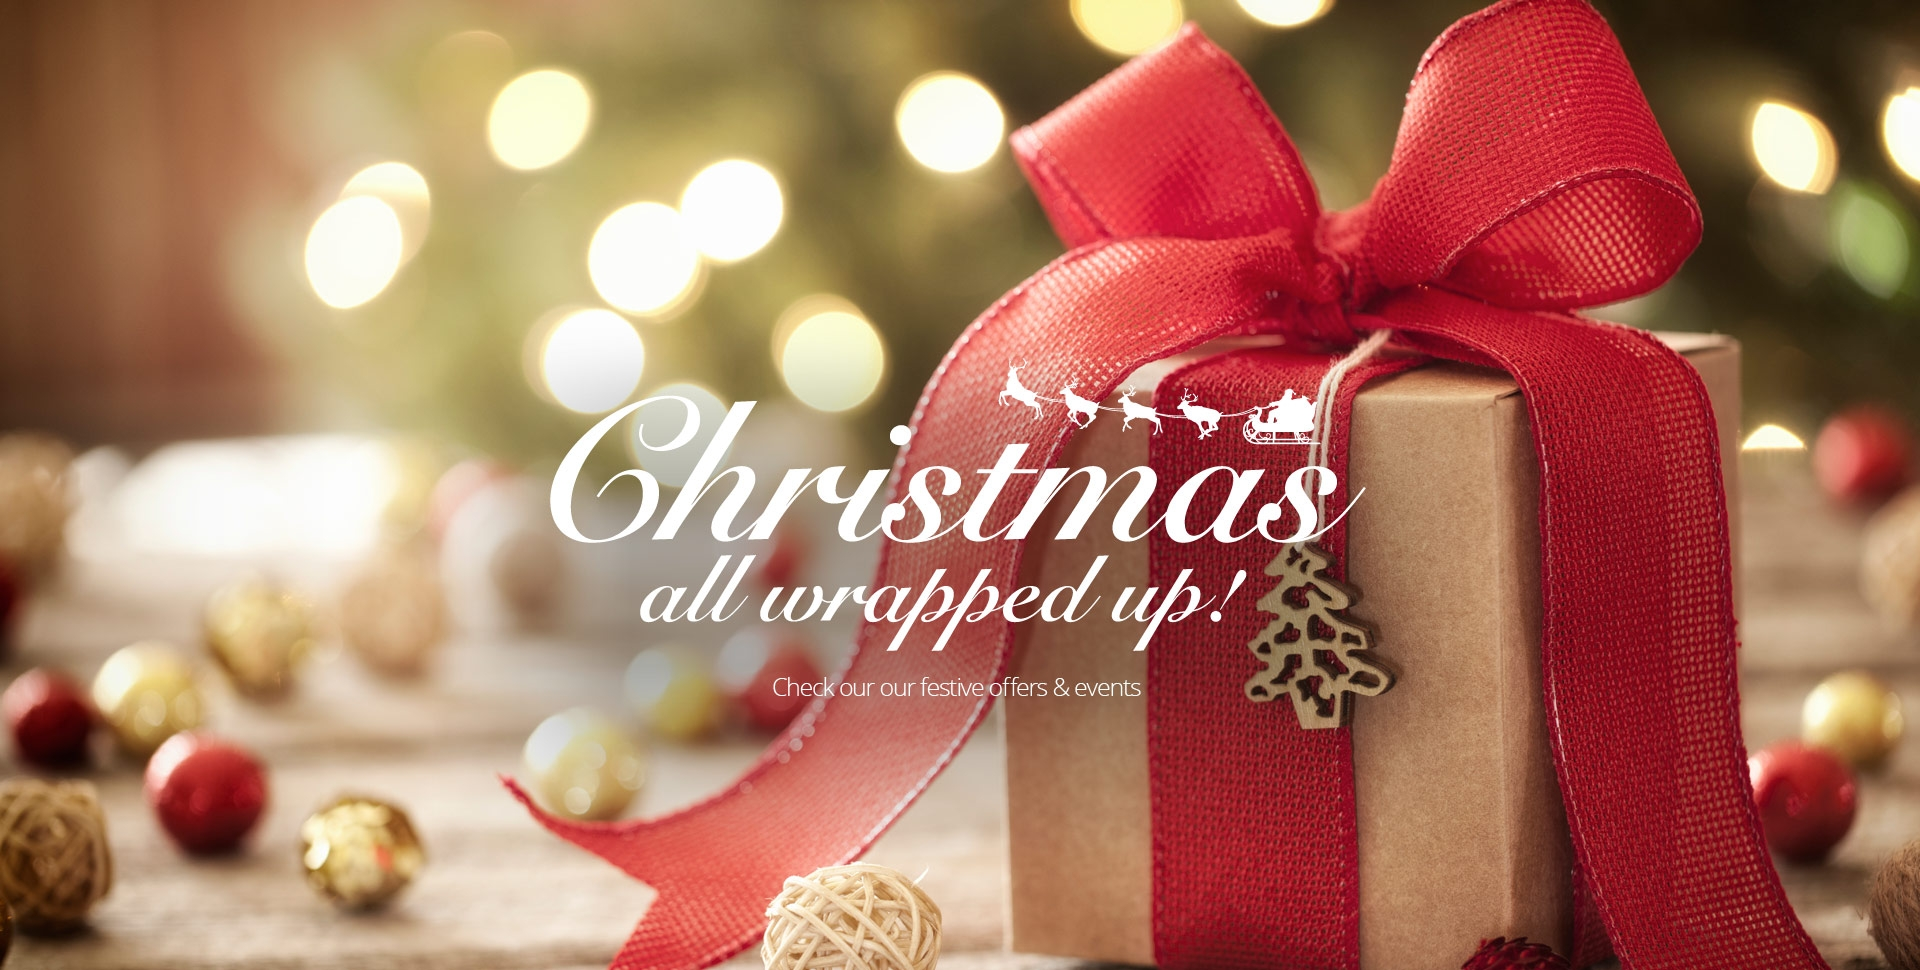 Christmas all wrapped up. Check out our festive offers and events